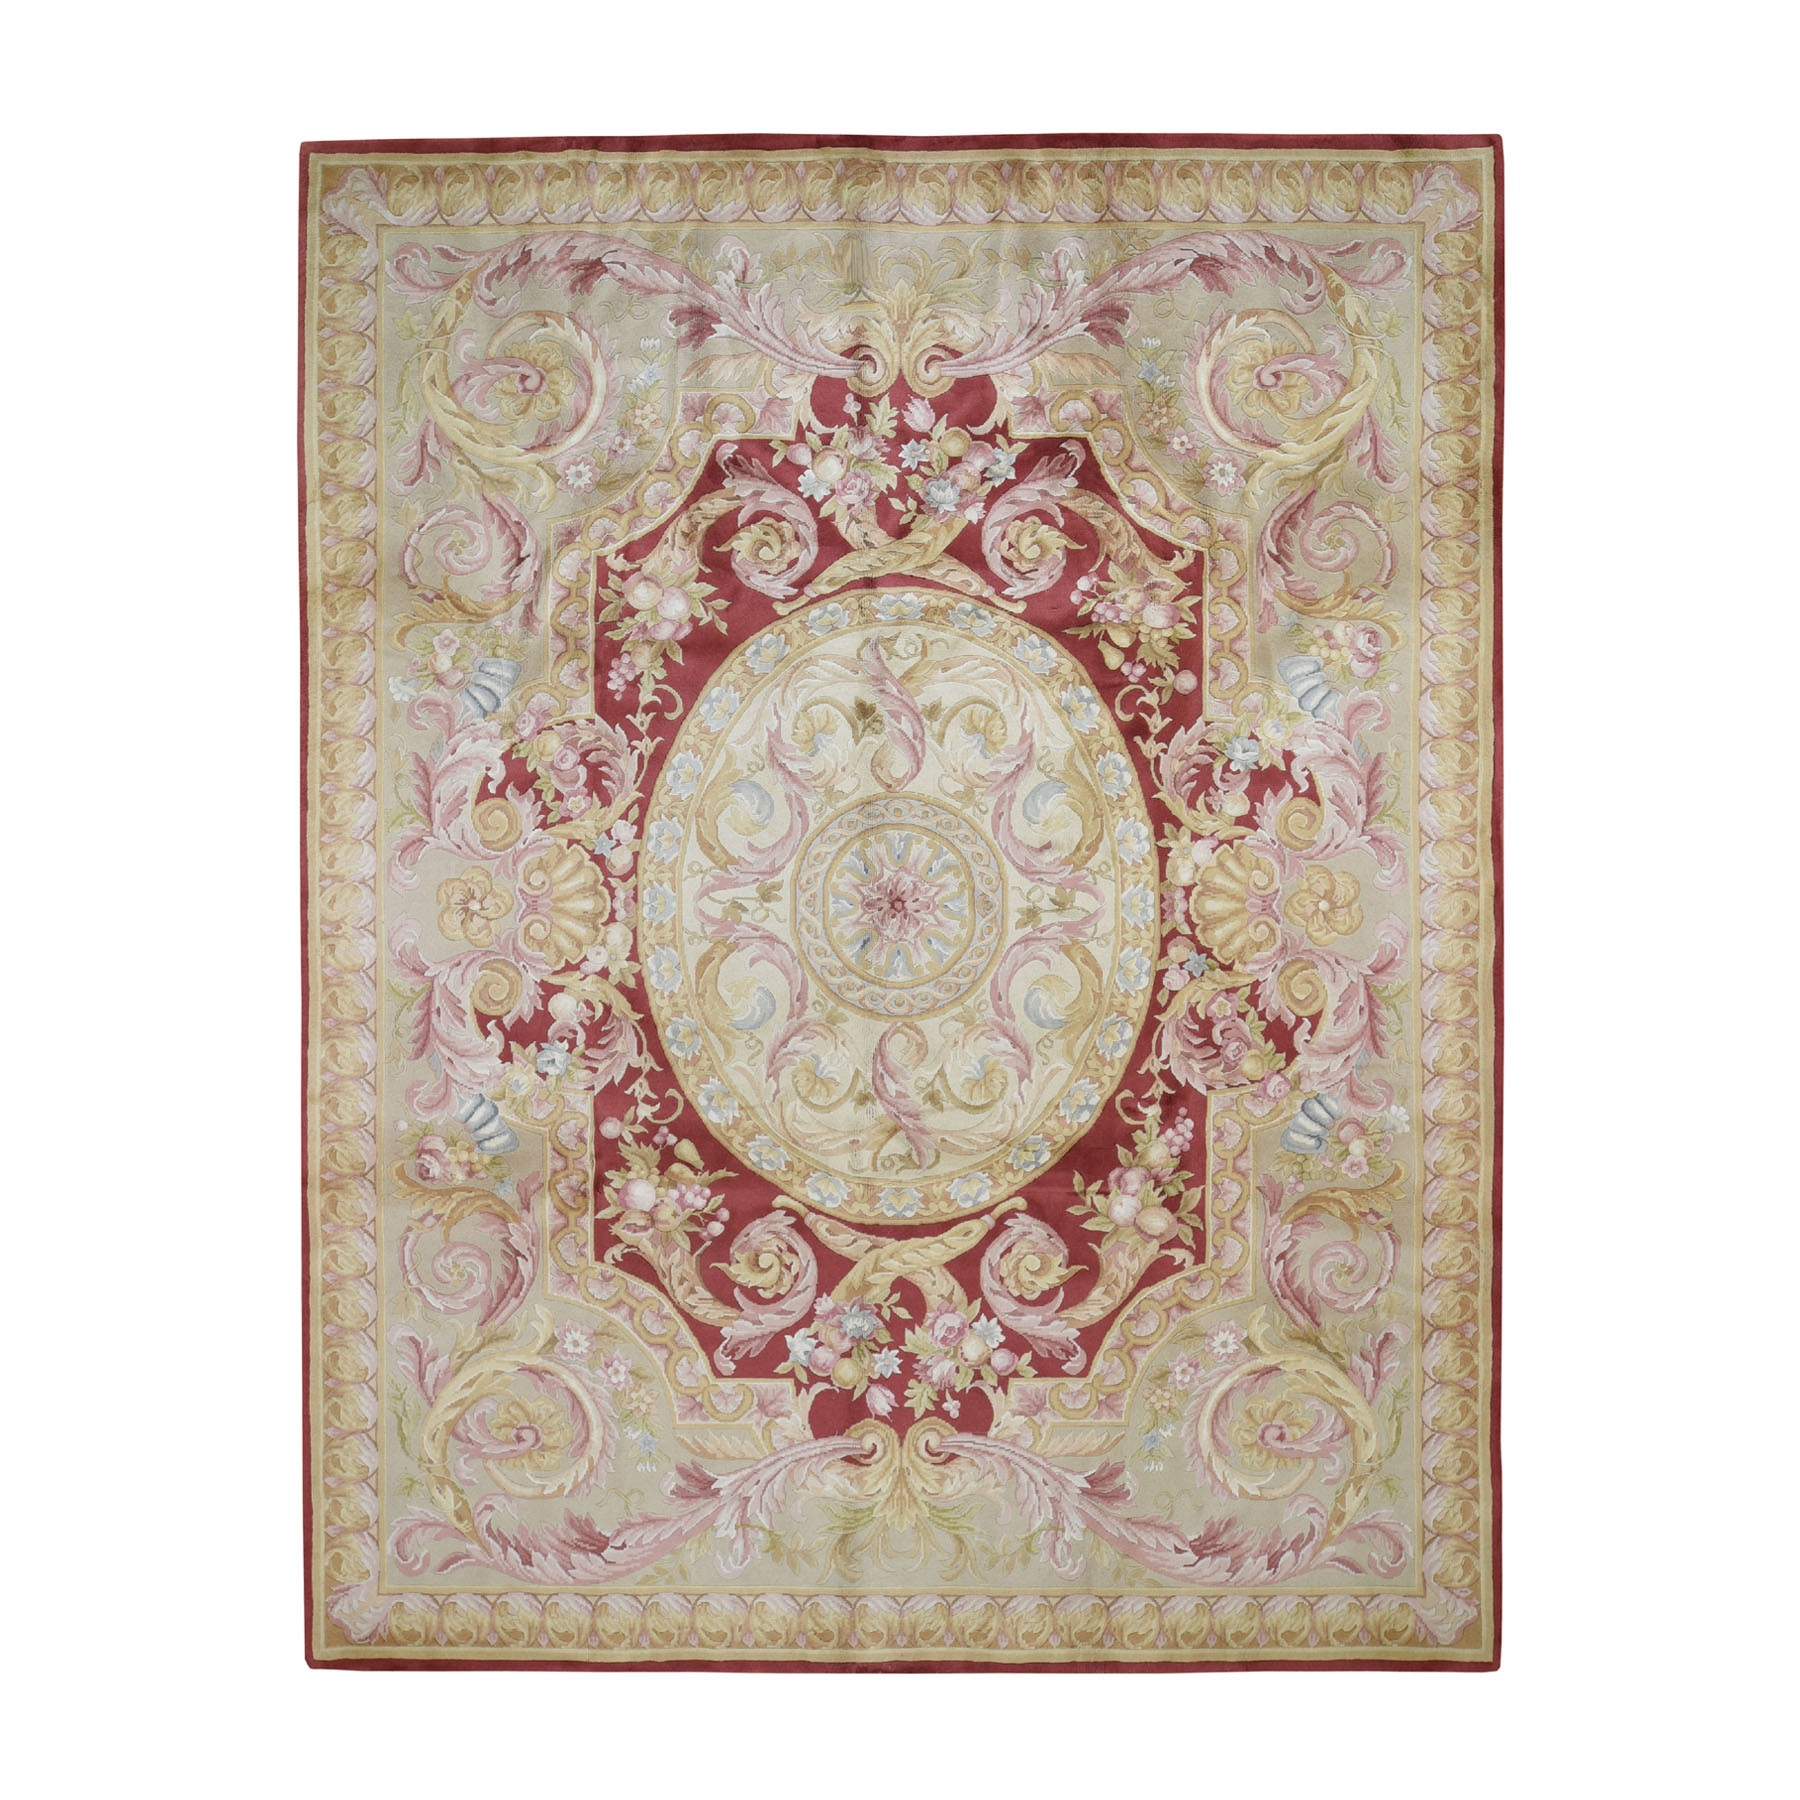 Elegant European Collection Hand Knotted Red Rug No: 193556